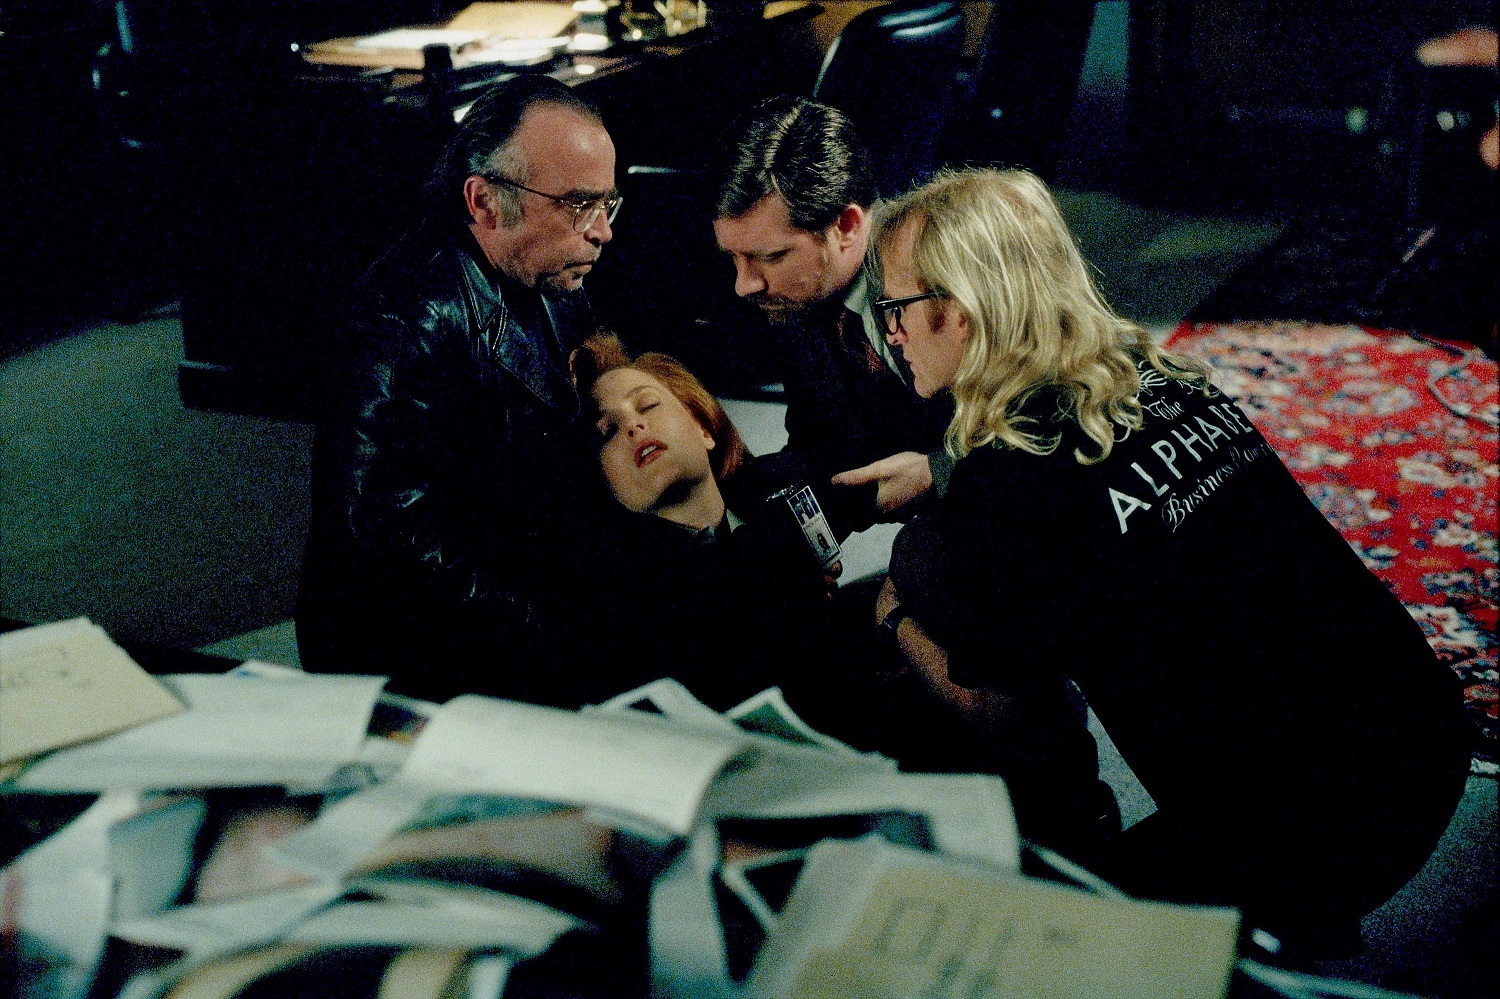 Agent Scully (Gillian Anderson, C) is saved from a fall by The Lone Gunmen (L-R: Tom Braidwood as Frohike, Bruce Harwood as Byers, and Dean Haglund as Langley) in The X-Files